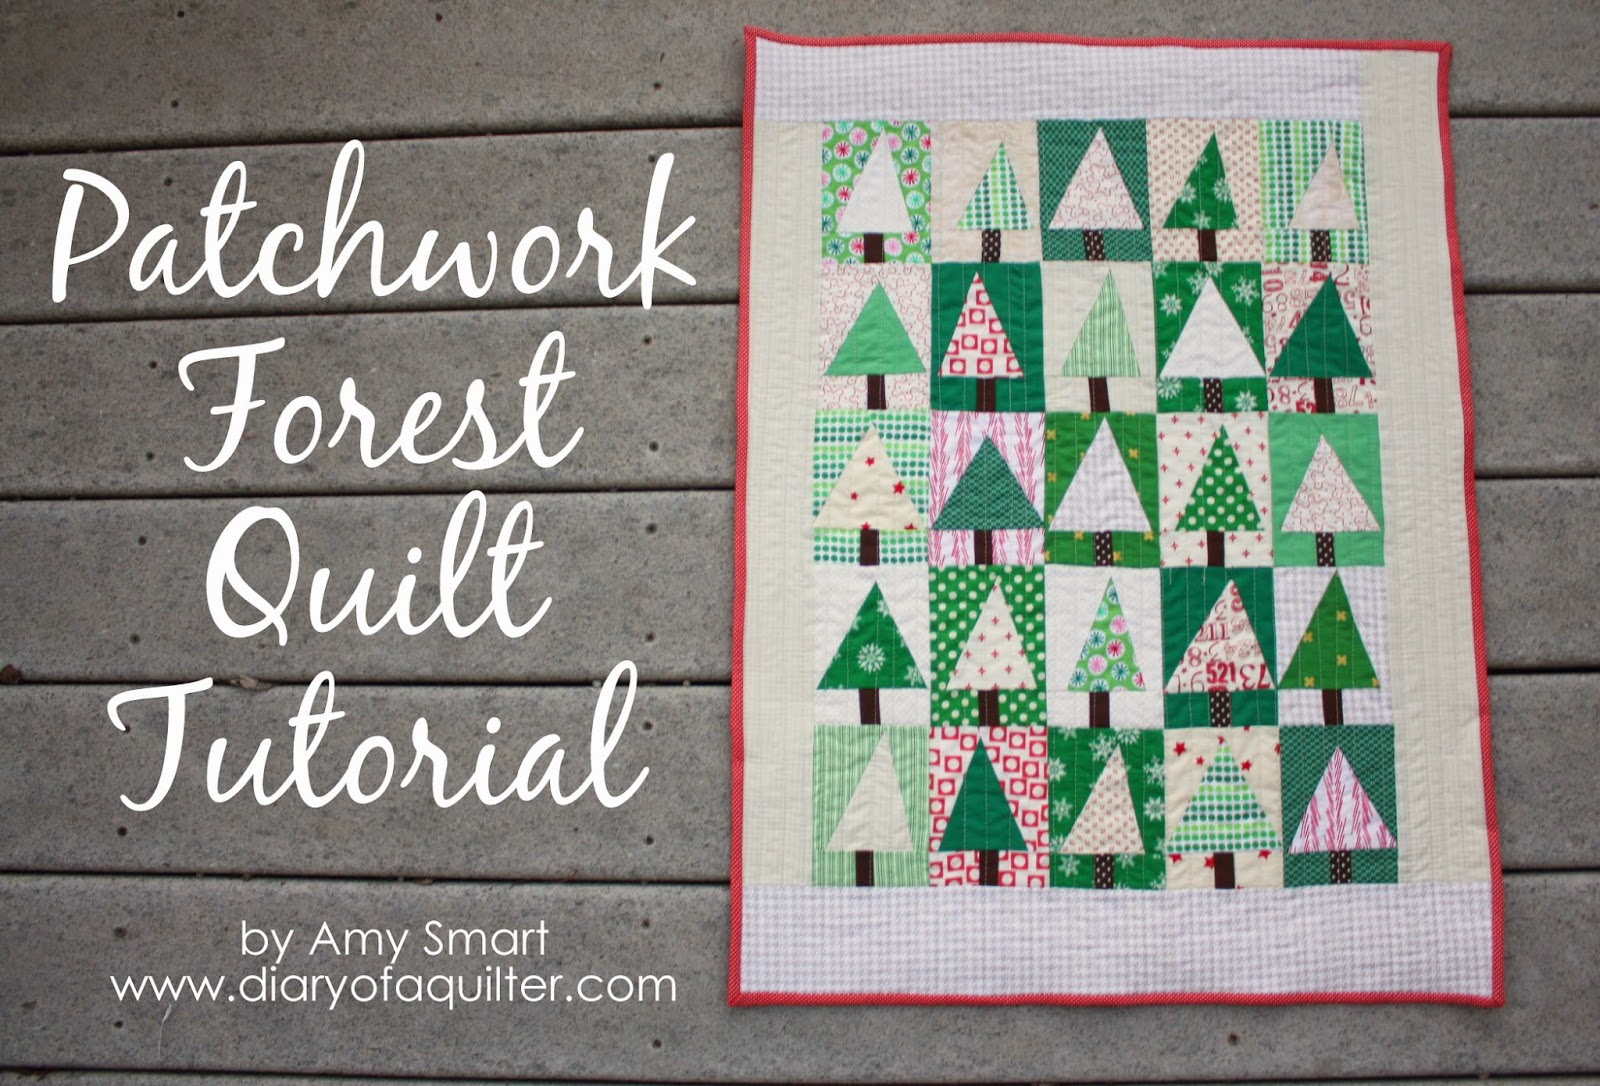 9 patch quilt block tutorial